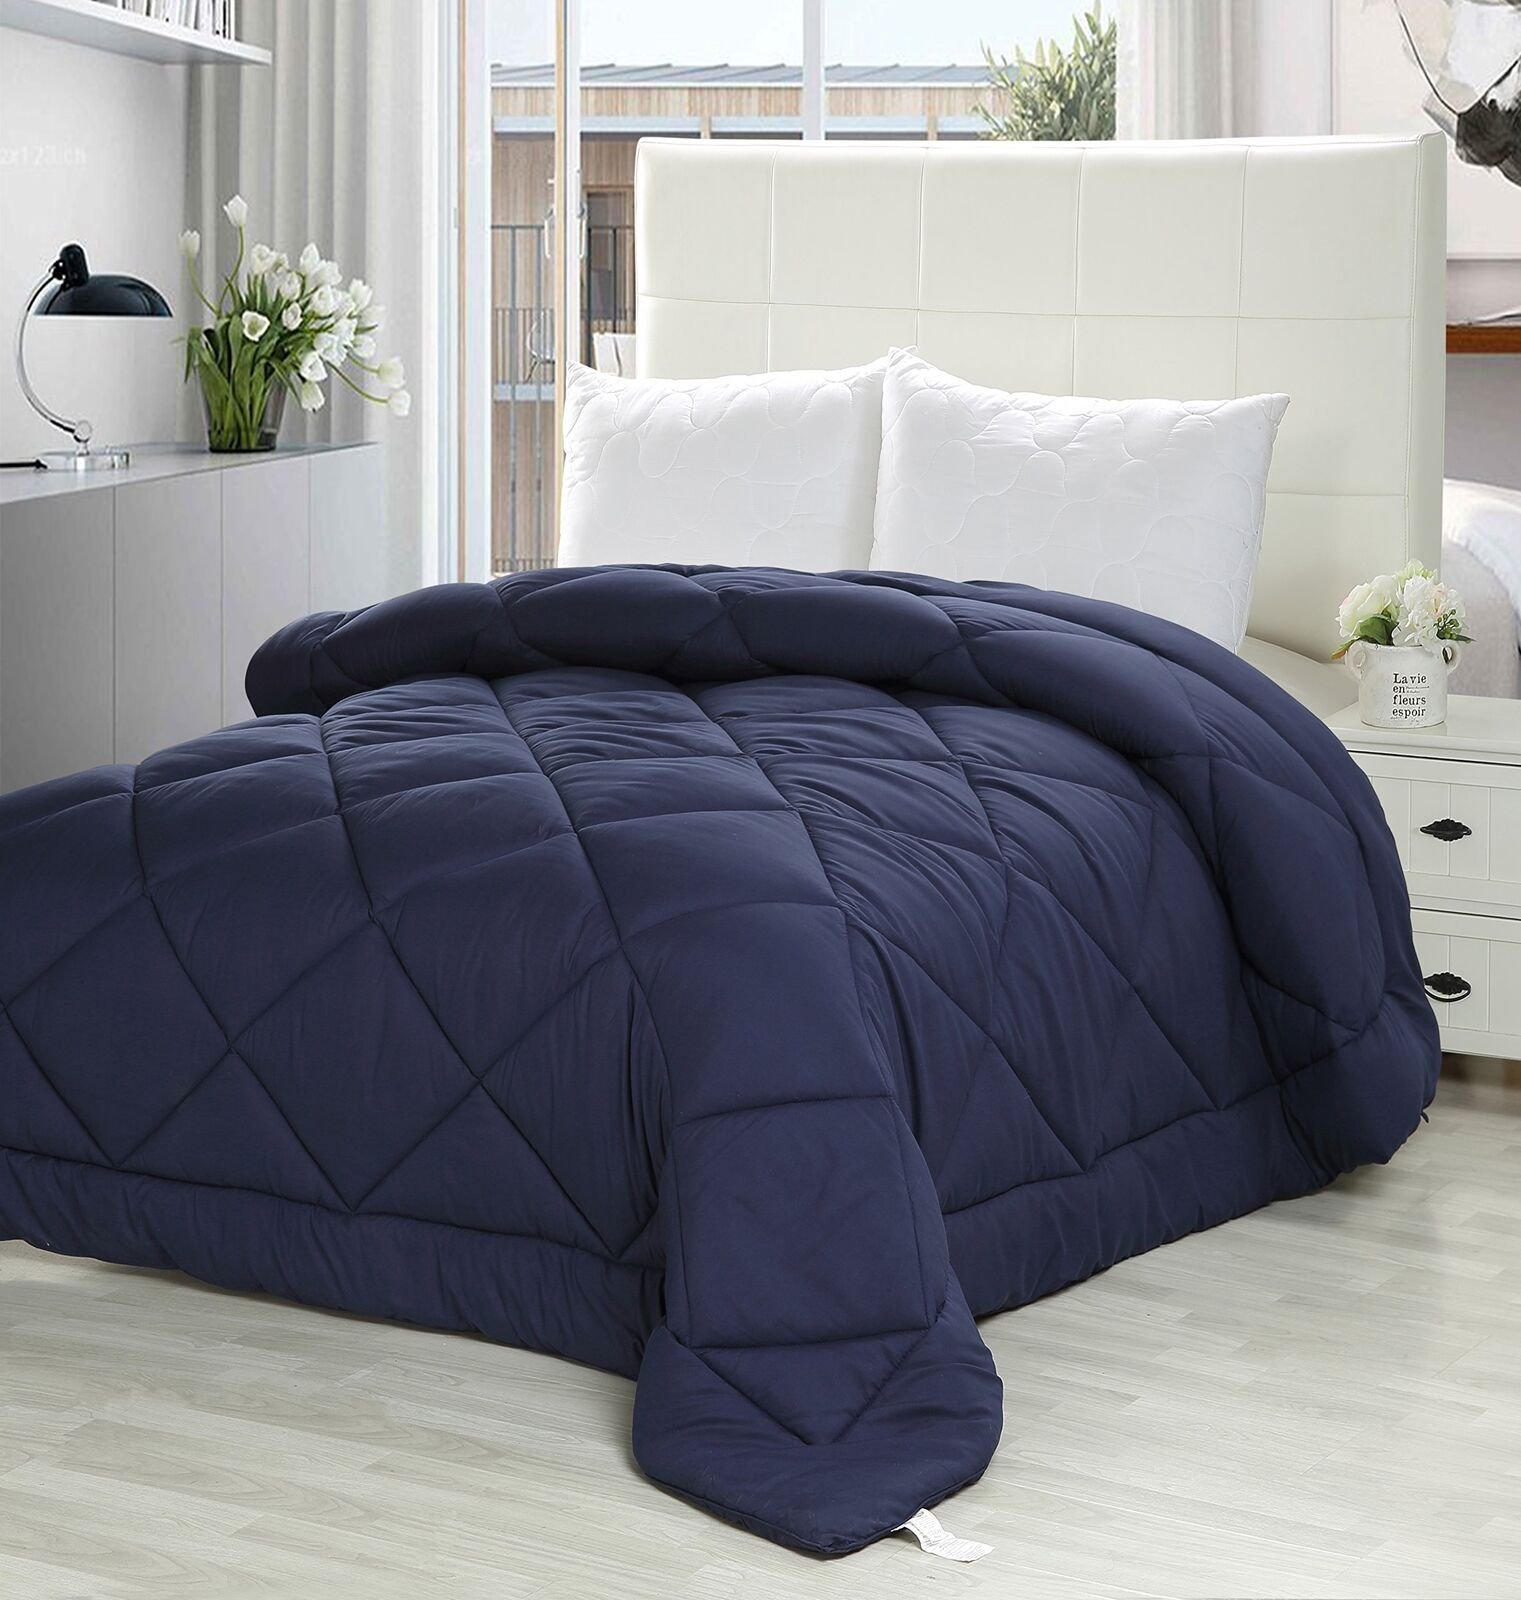 Queen Comforter Duvet Insert Navy - Quilted Comforter with Corner Tabs - Plush